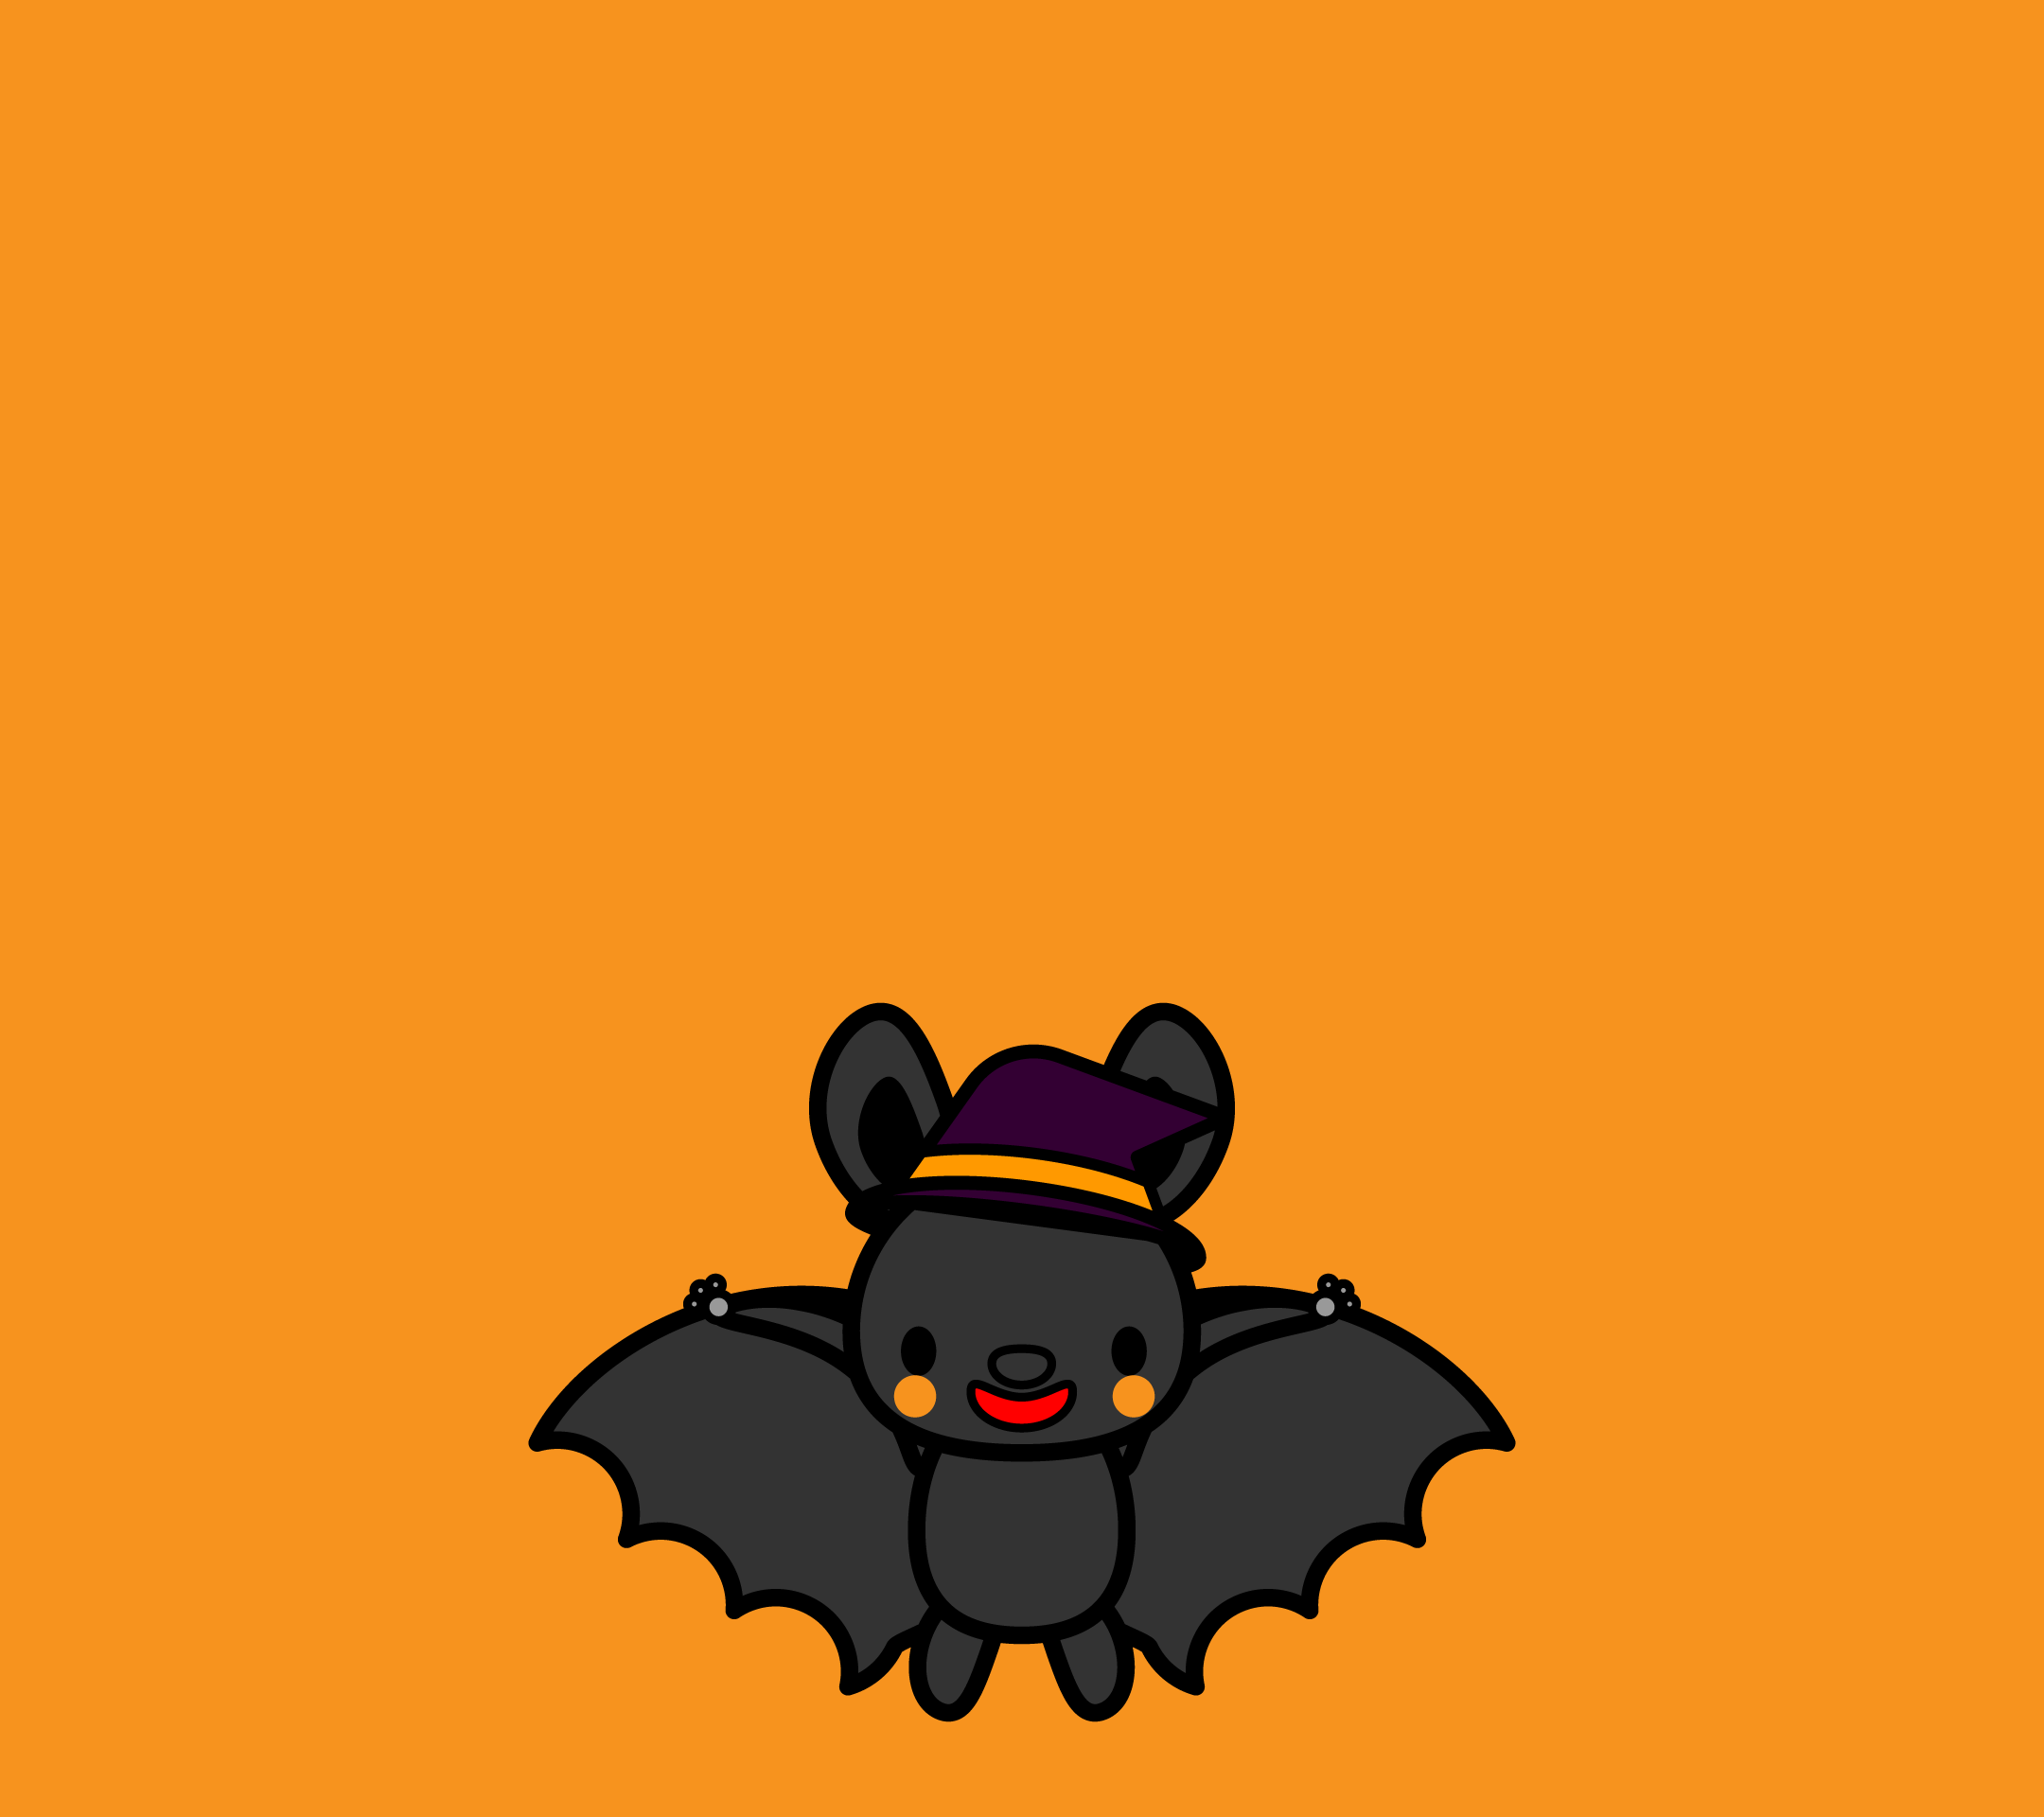 wallpaper2_halloween-bat01-orange-android